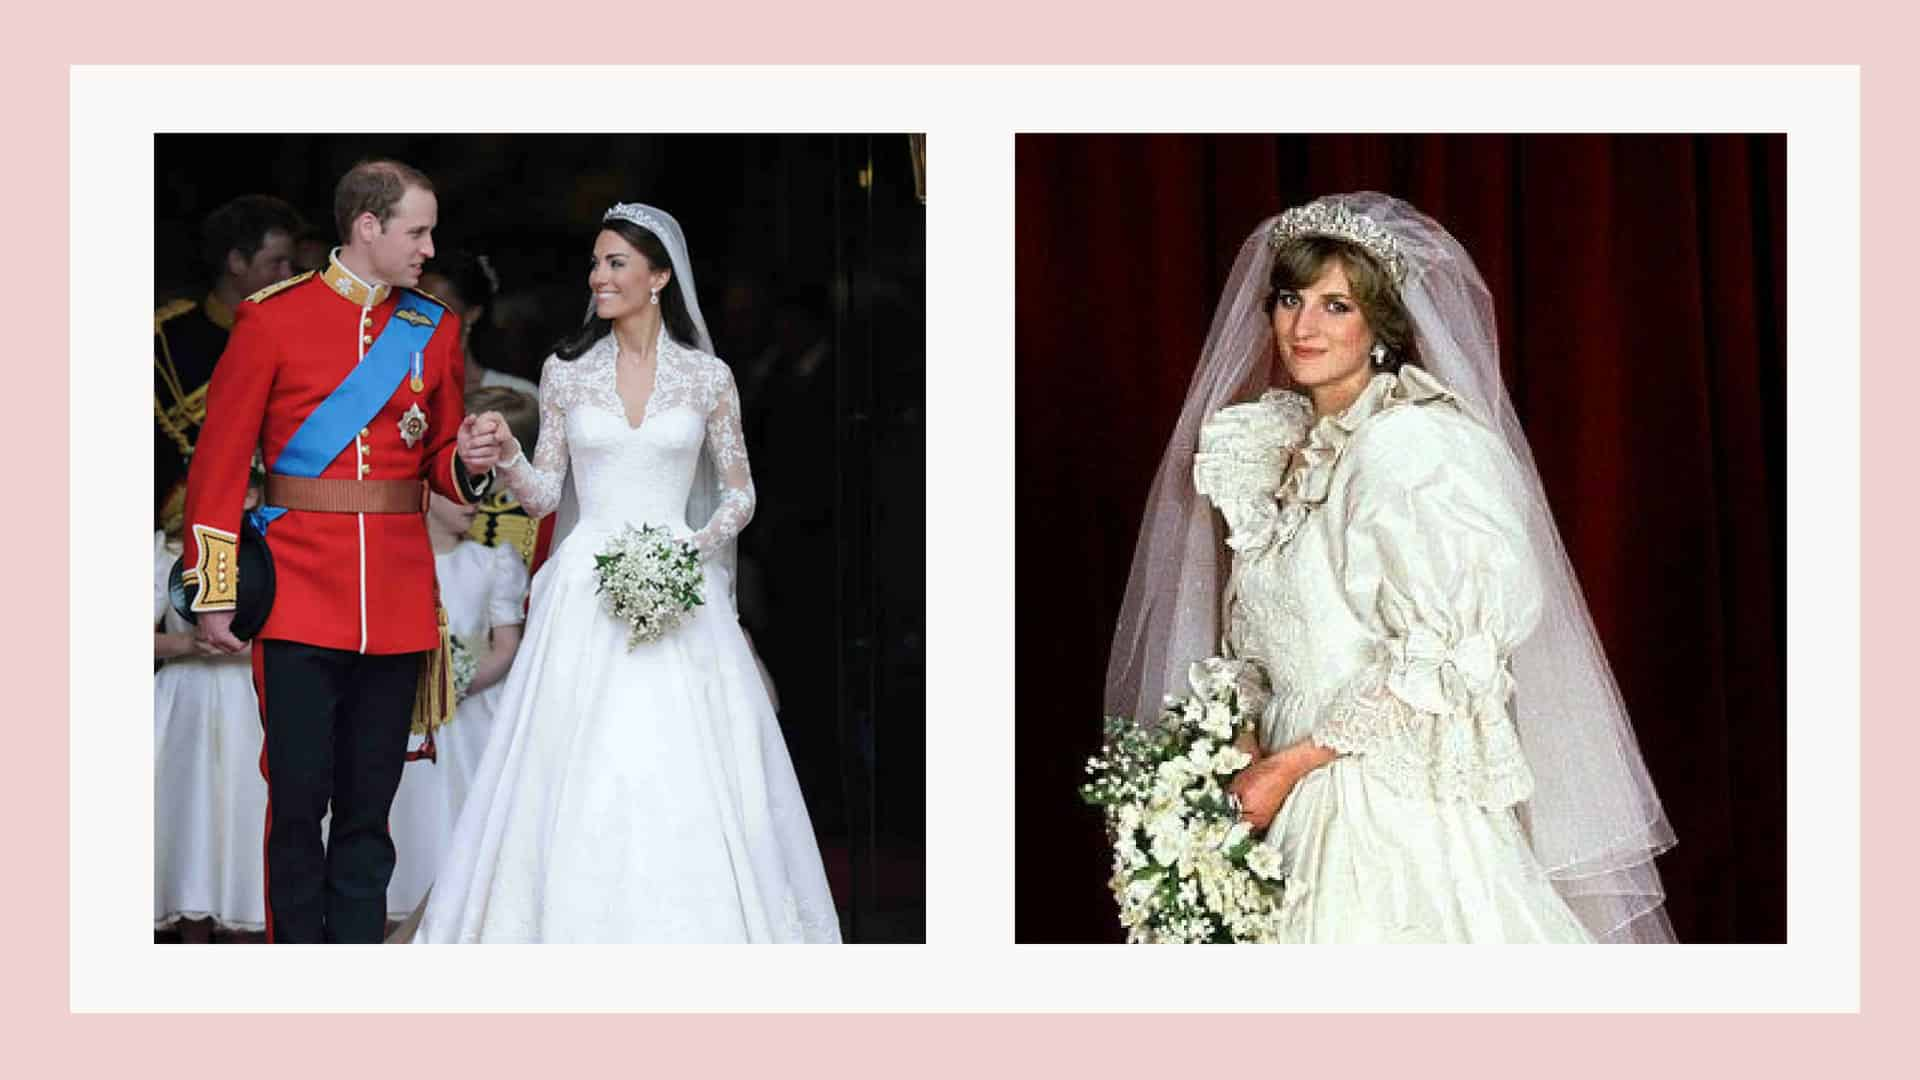 princess diana and kate middleton wearing wedding dresses